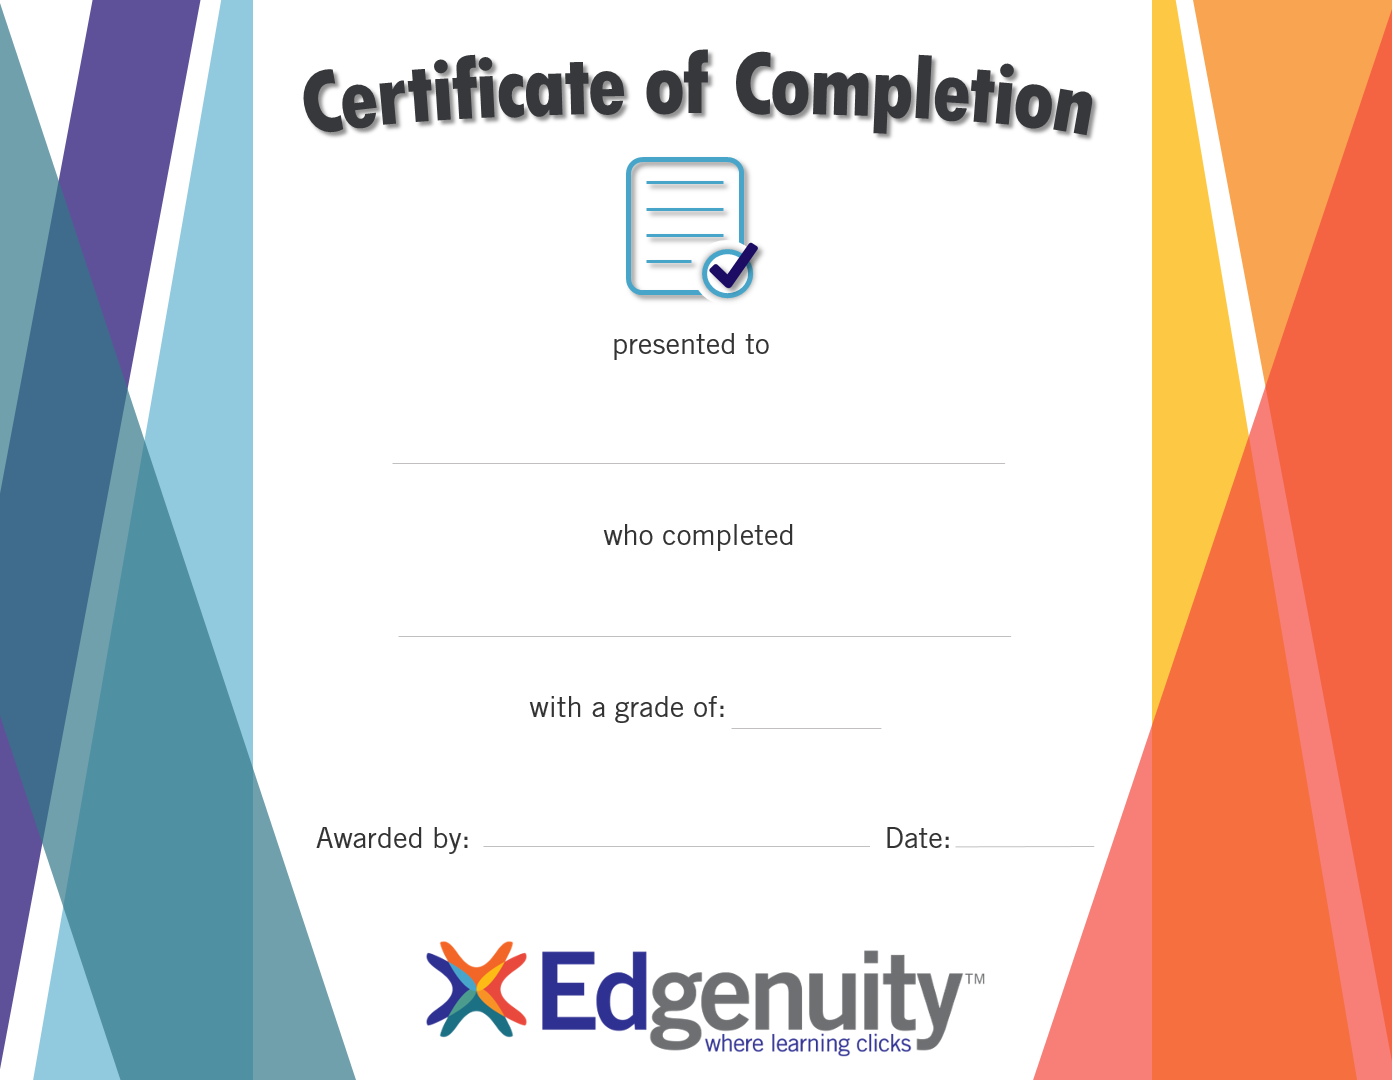 Certificate_of_Completion_v2-2_with_grade.png